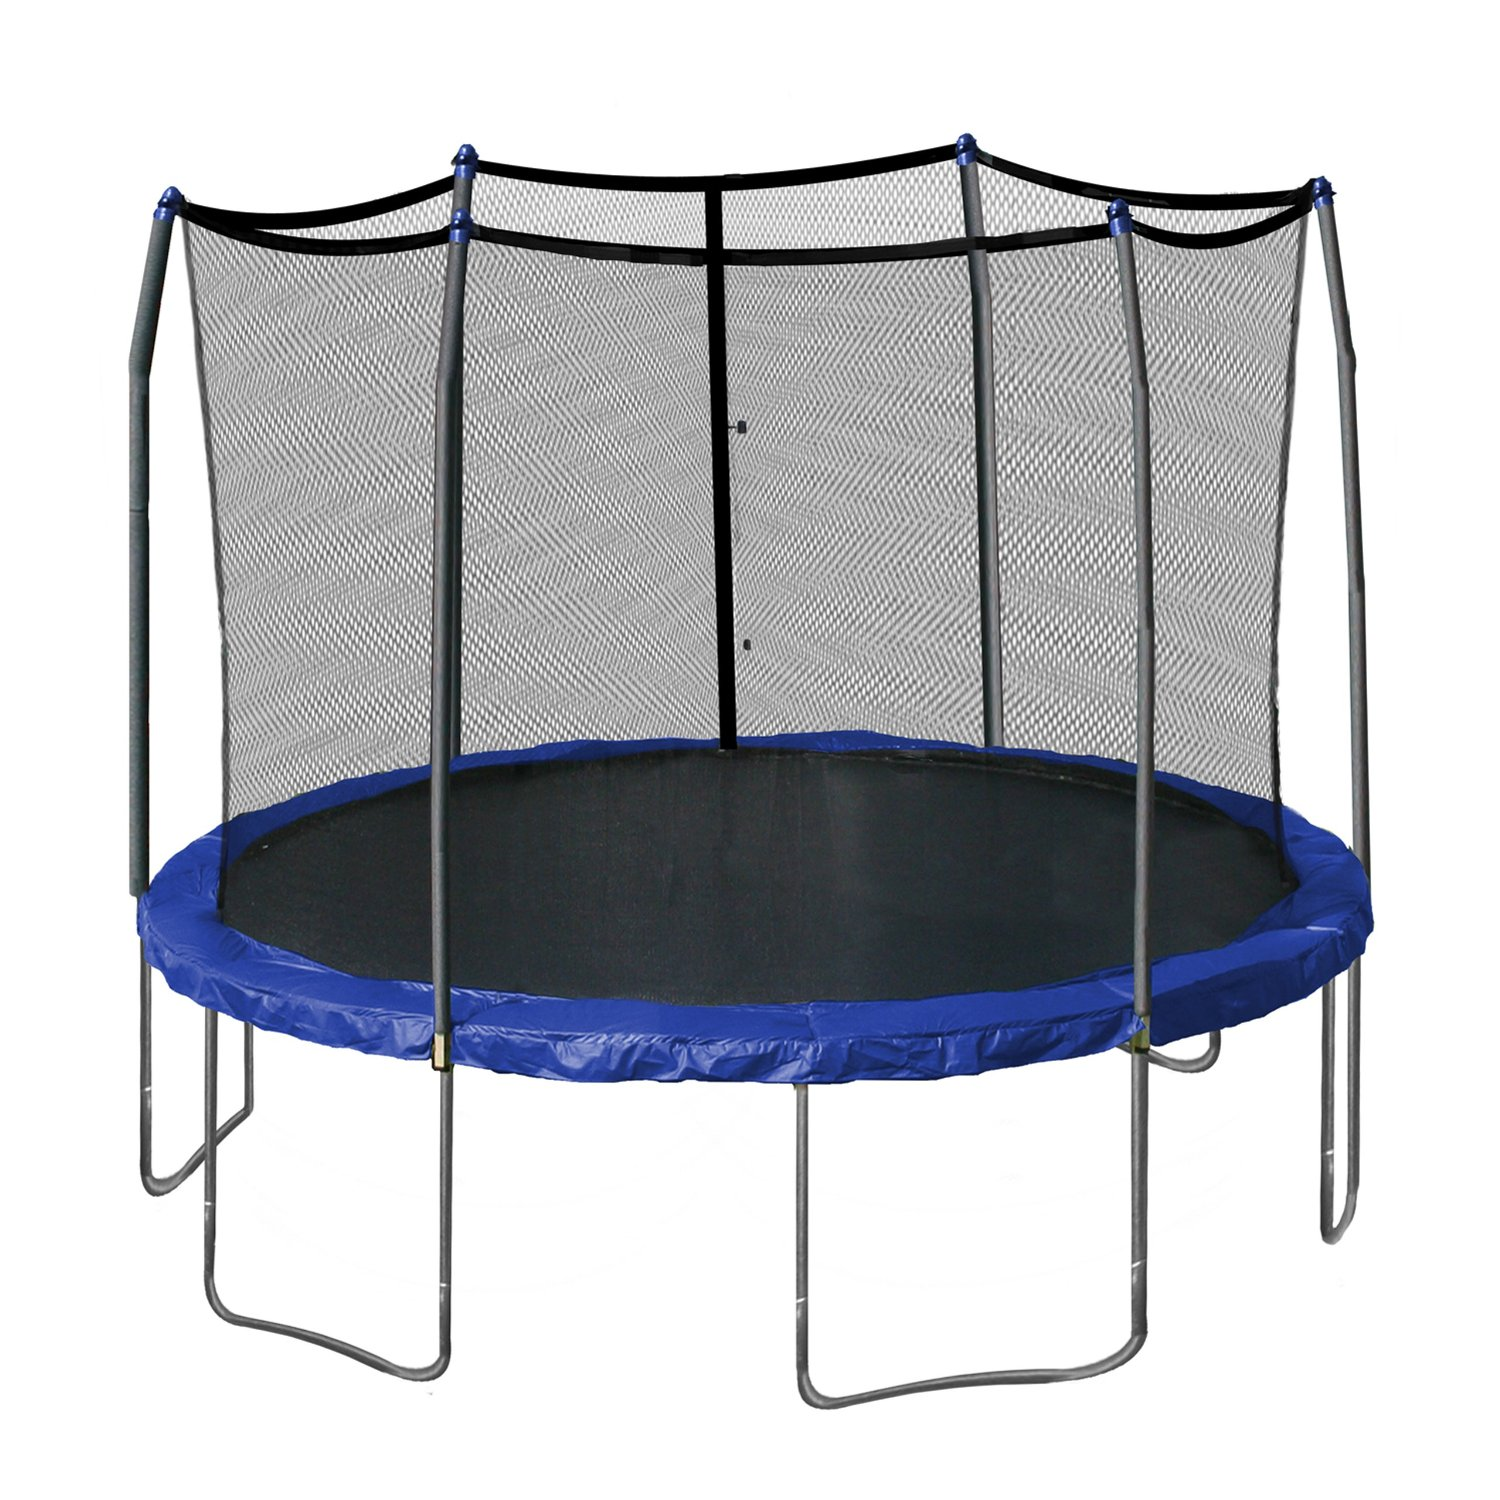 Top 9 Best Trampolines in 2019 Review